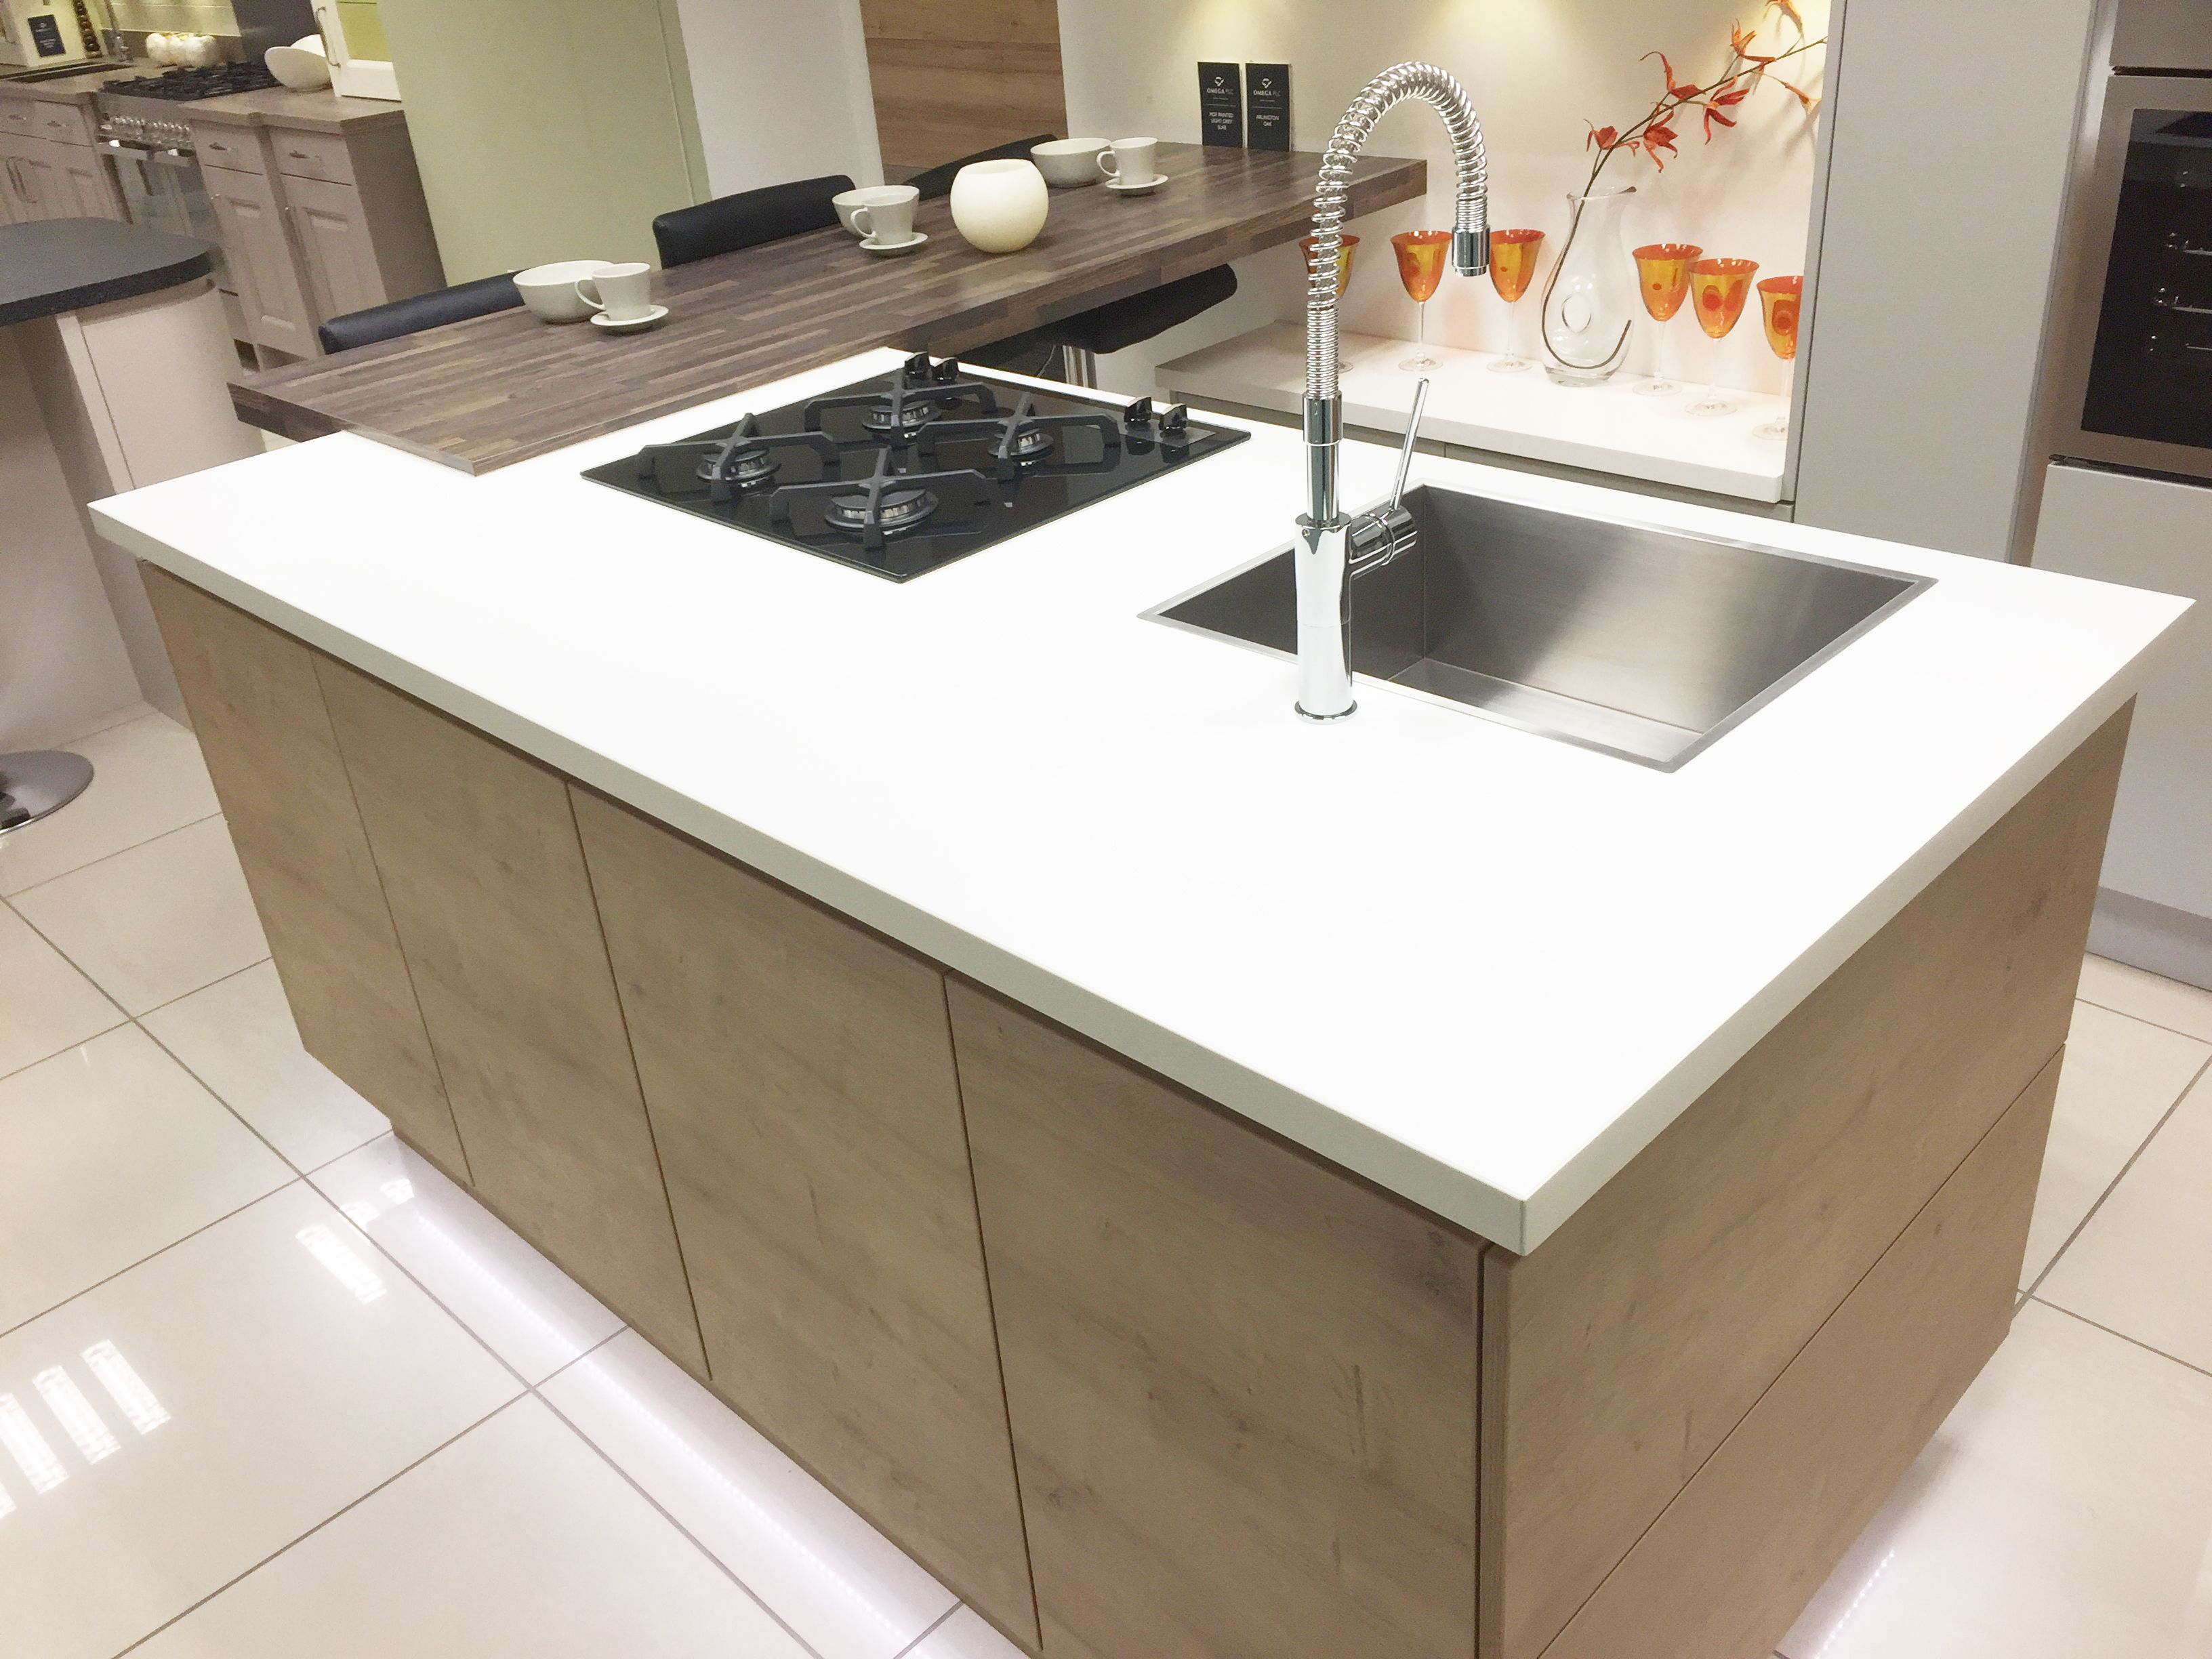 English Hob Kitchen ~ Modern kitchen island with hob sink and breakfast bar